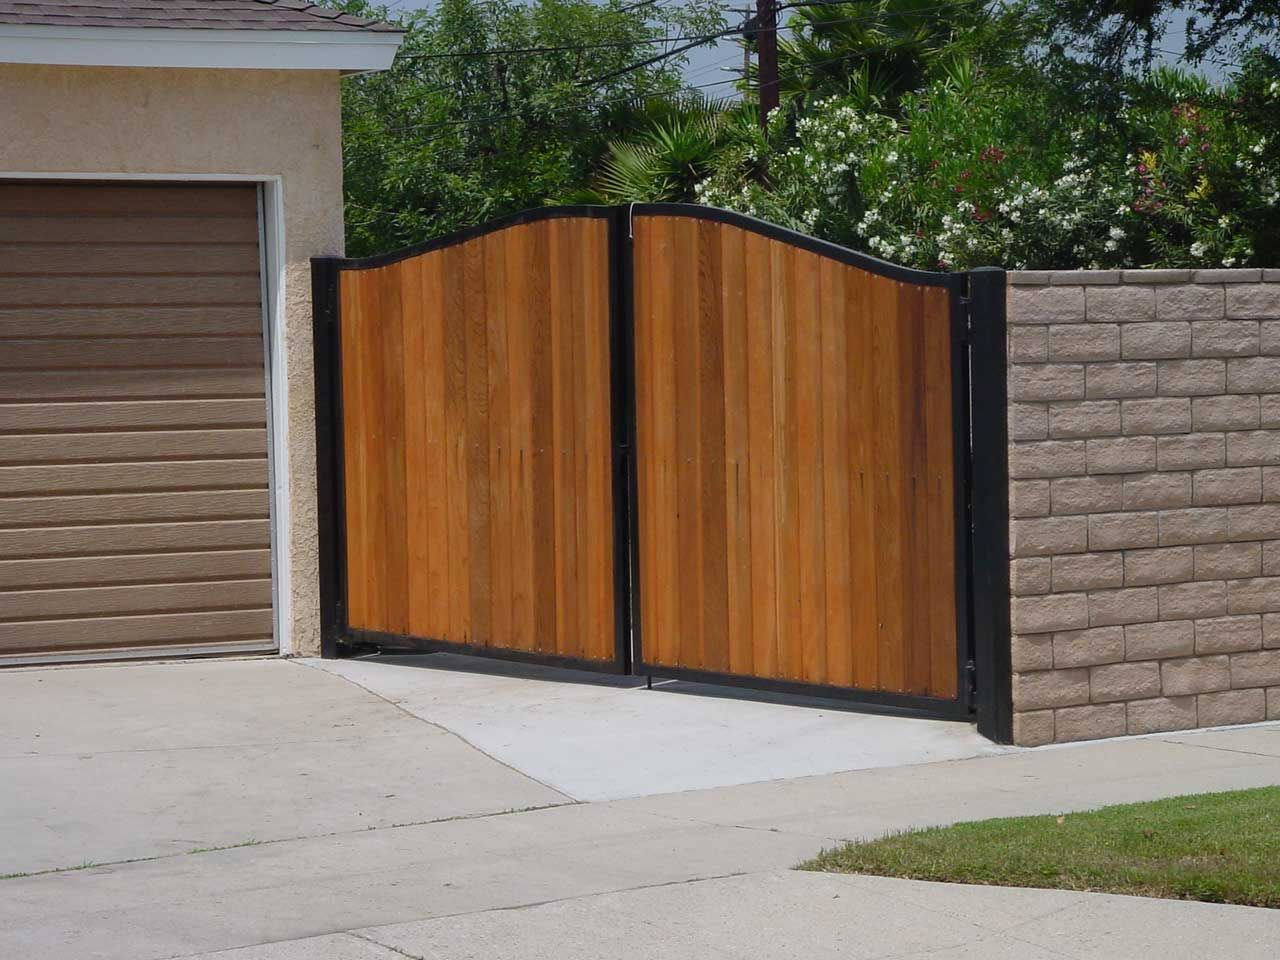 Galvanized steel frame drive gate fence dallas wood gate - Exterior Cool Garden And Front Yard Design As Home Exterior Decoration Using Black Iron And Wooden Fence Gate Oak Wooden Fence Gate Black Iron Gate Slot